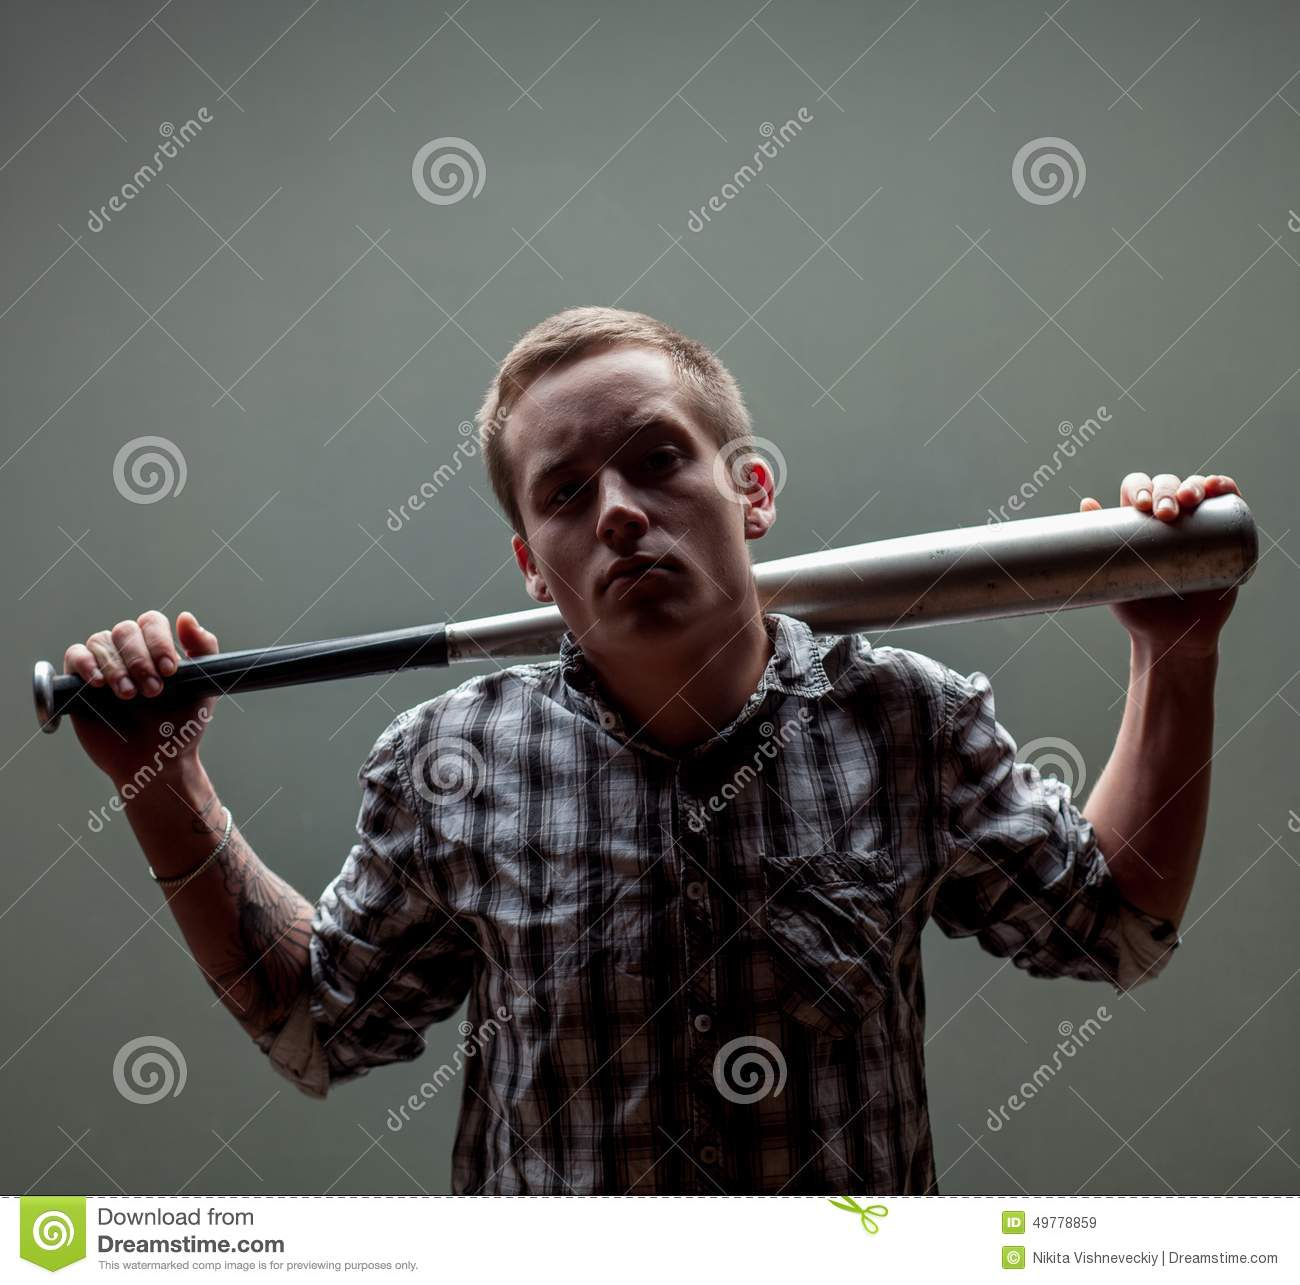 550d62f7160 Guy with a baseball bat stock image. Image of thug